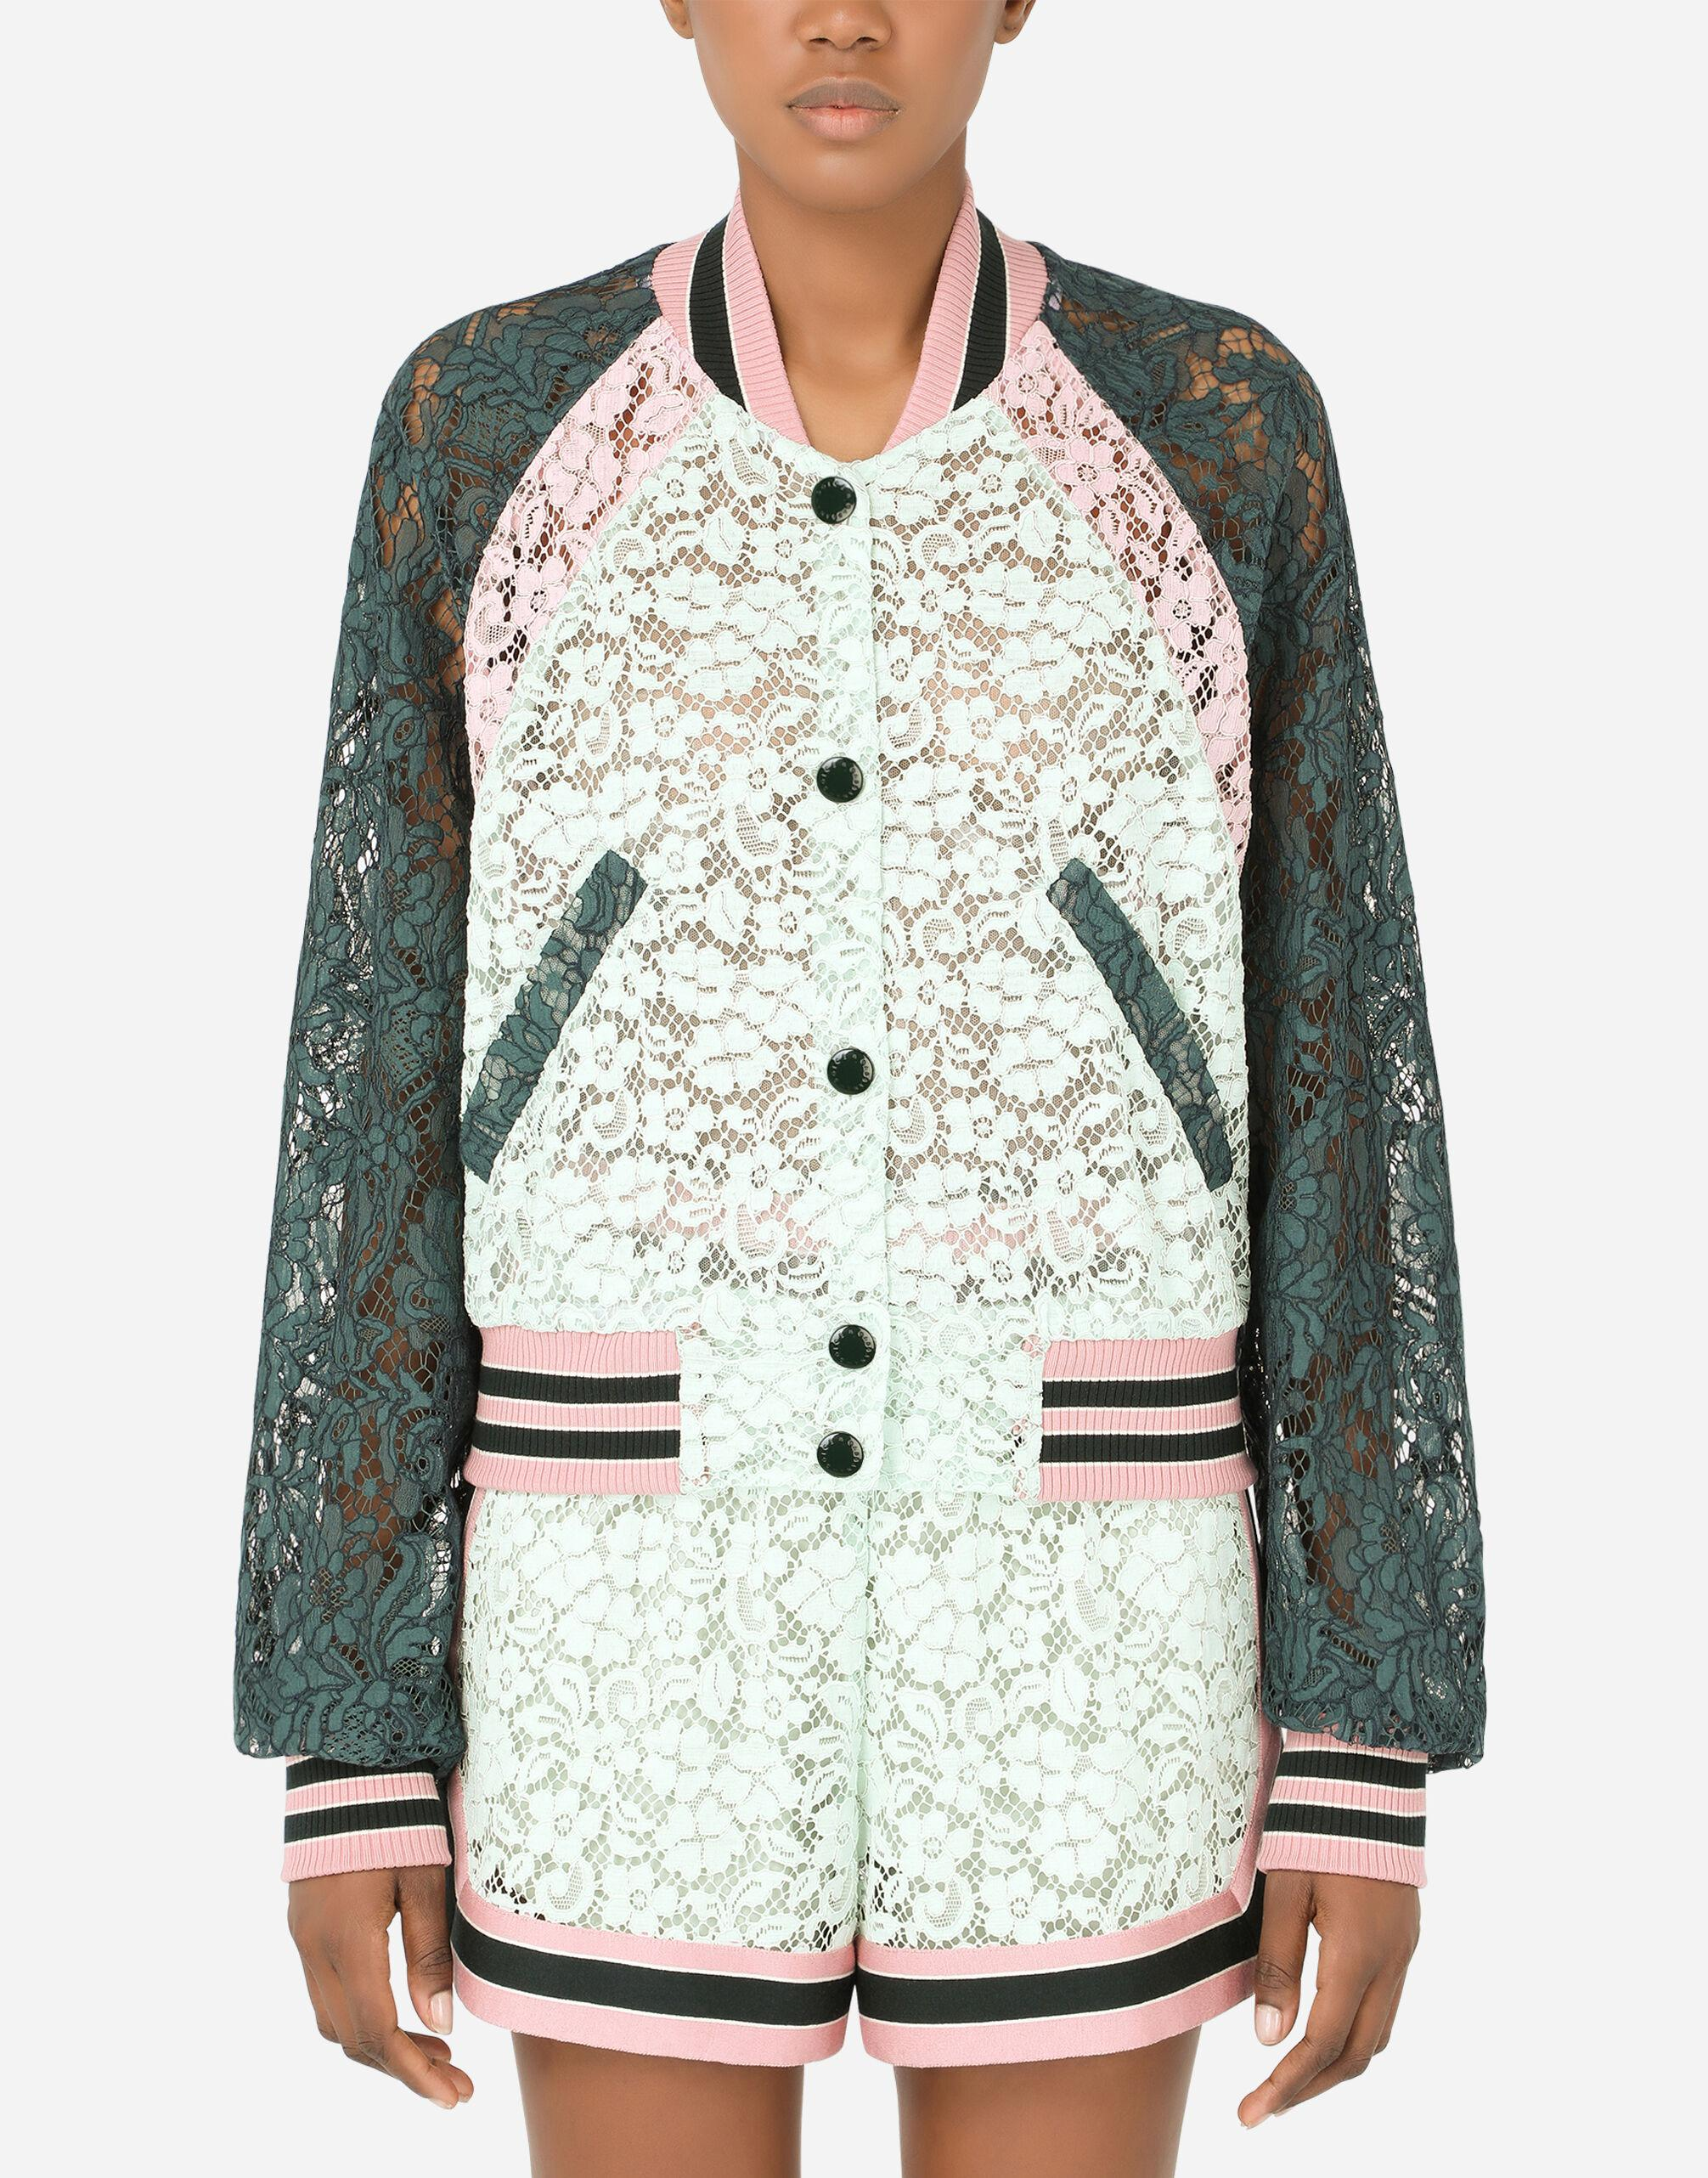 Lace bomber jacket with contrasting trims